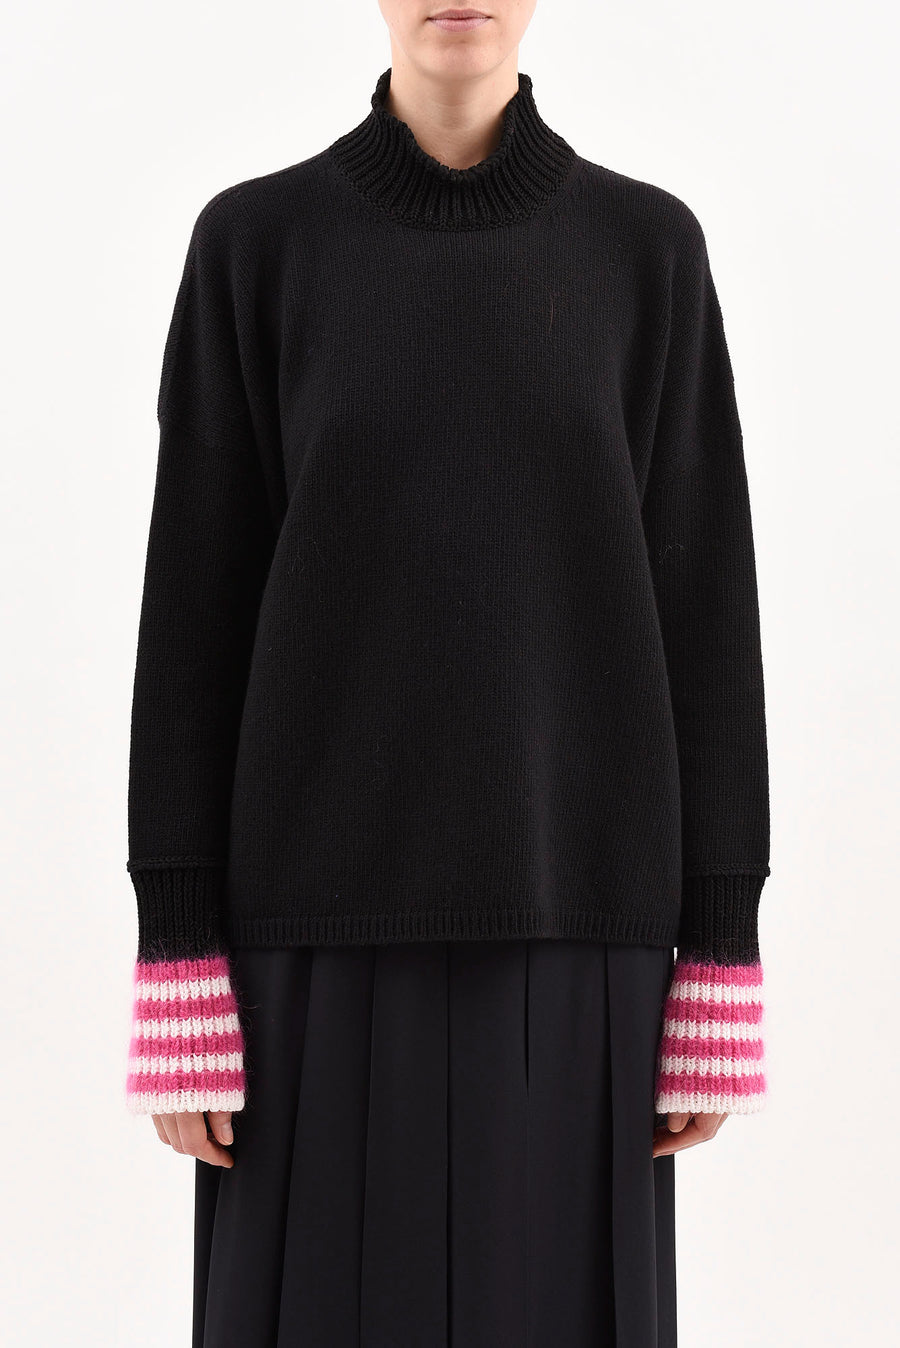 Turtleneck Sweater in Black with Magenta Striped Cuff